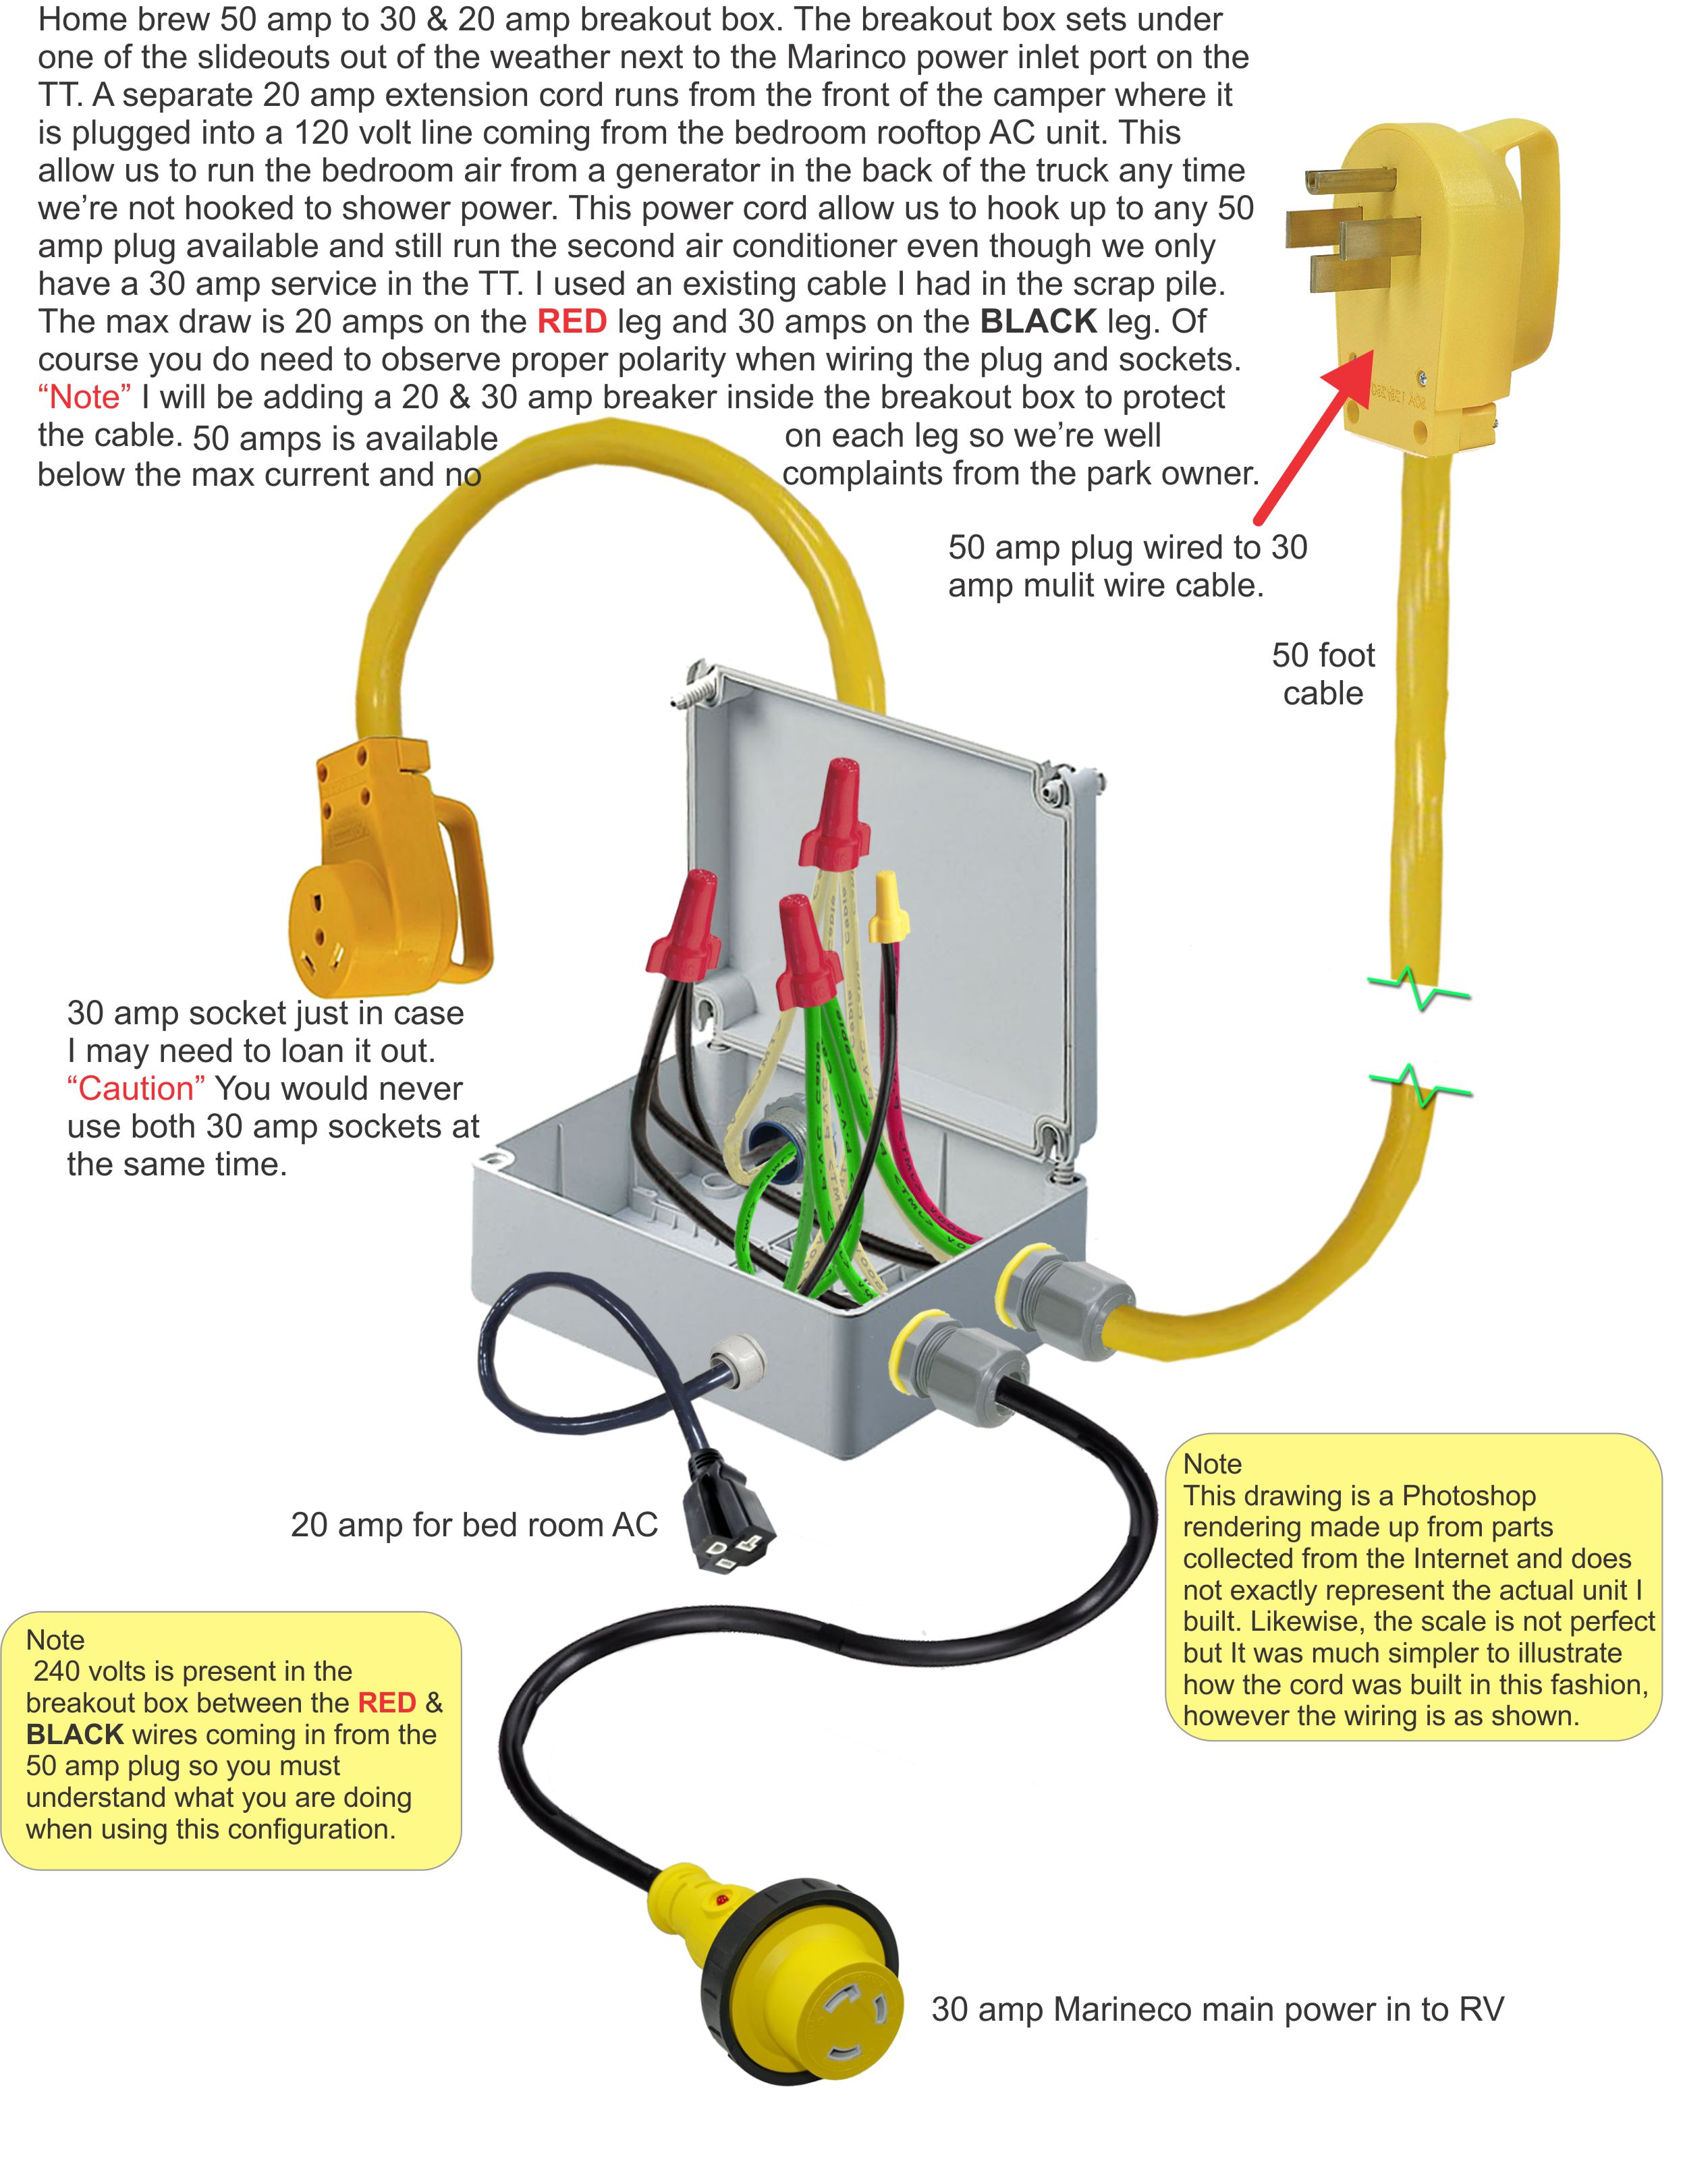 50 amp to 30 amp adapter wiring diagram   39 wiring